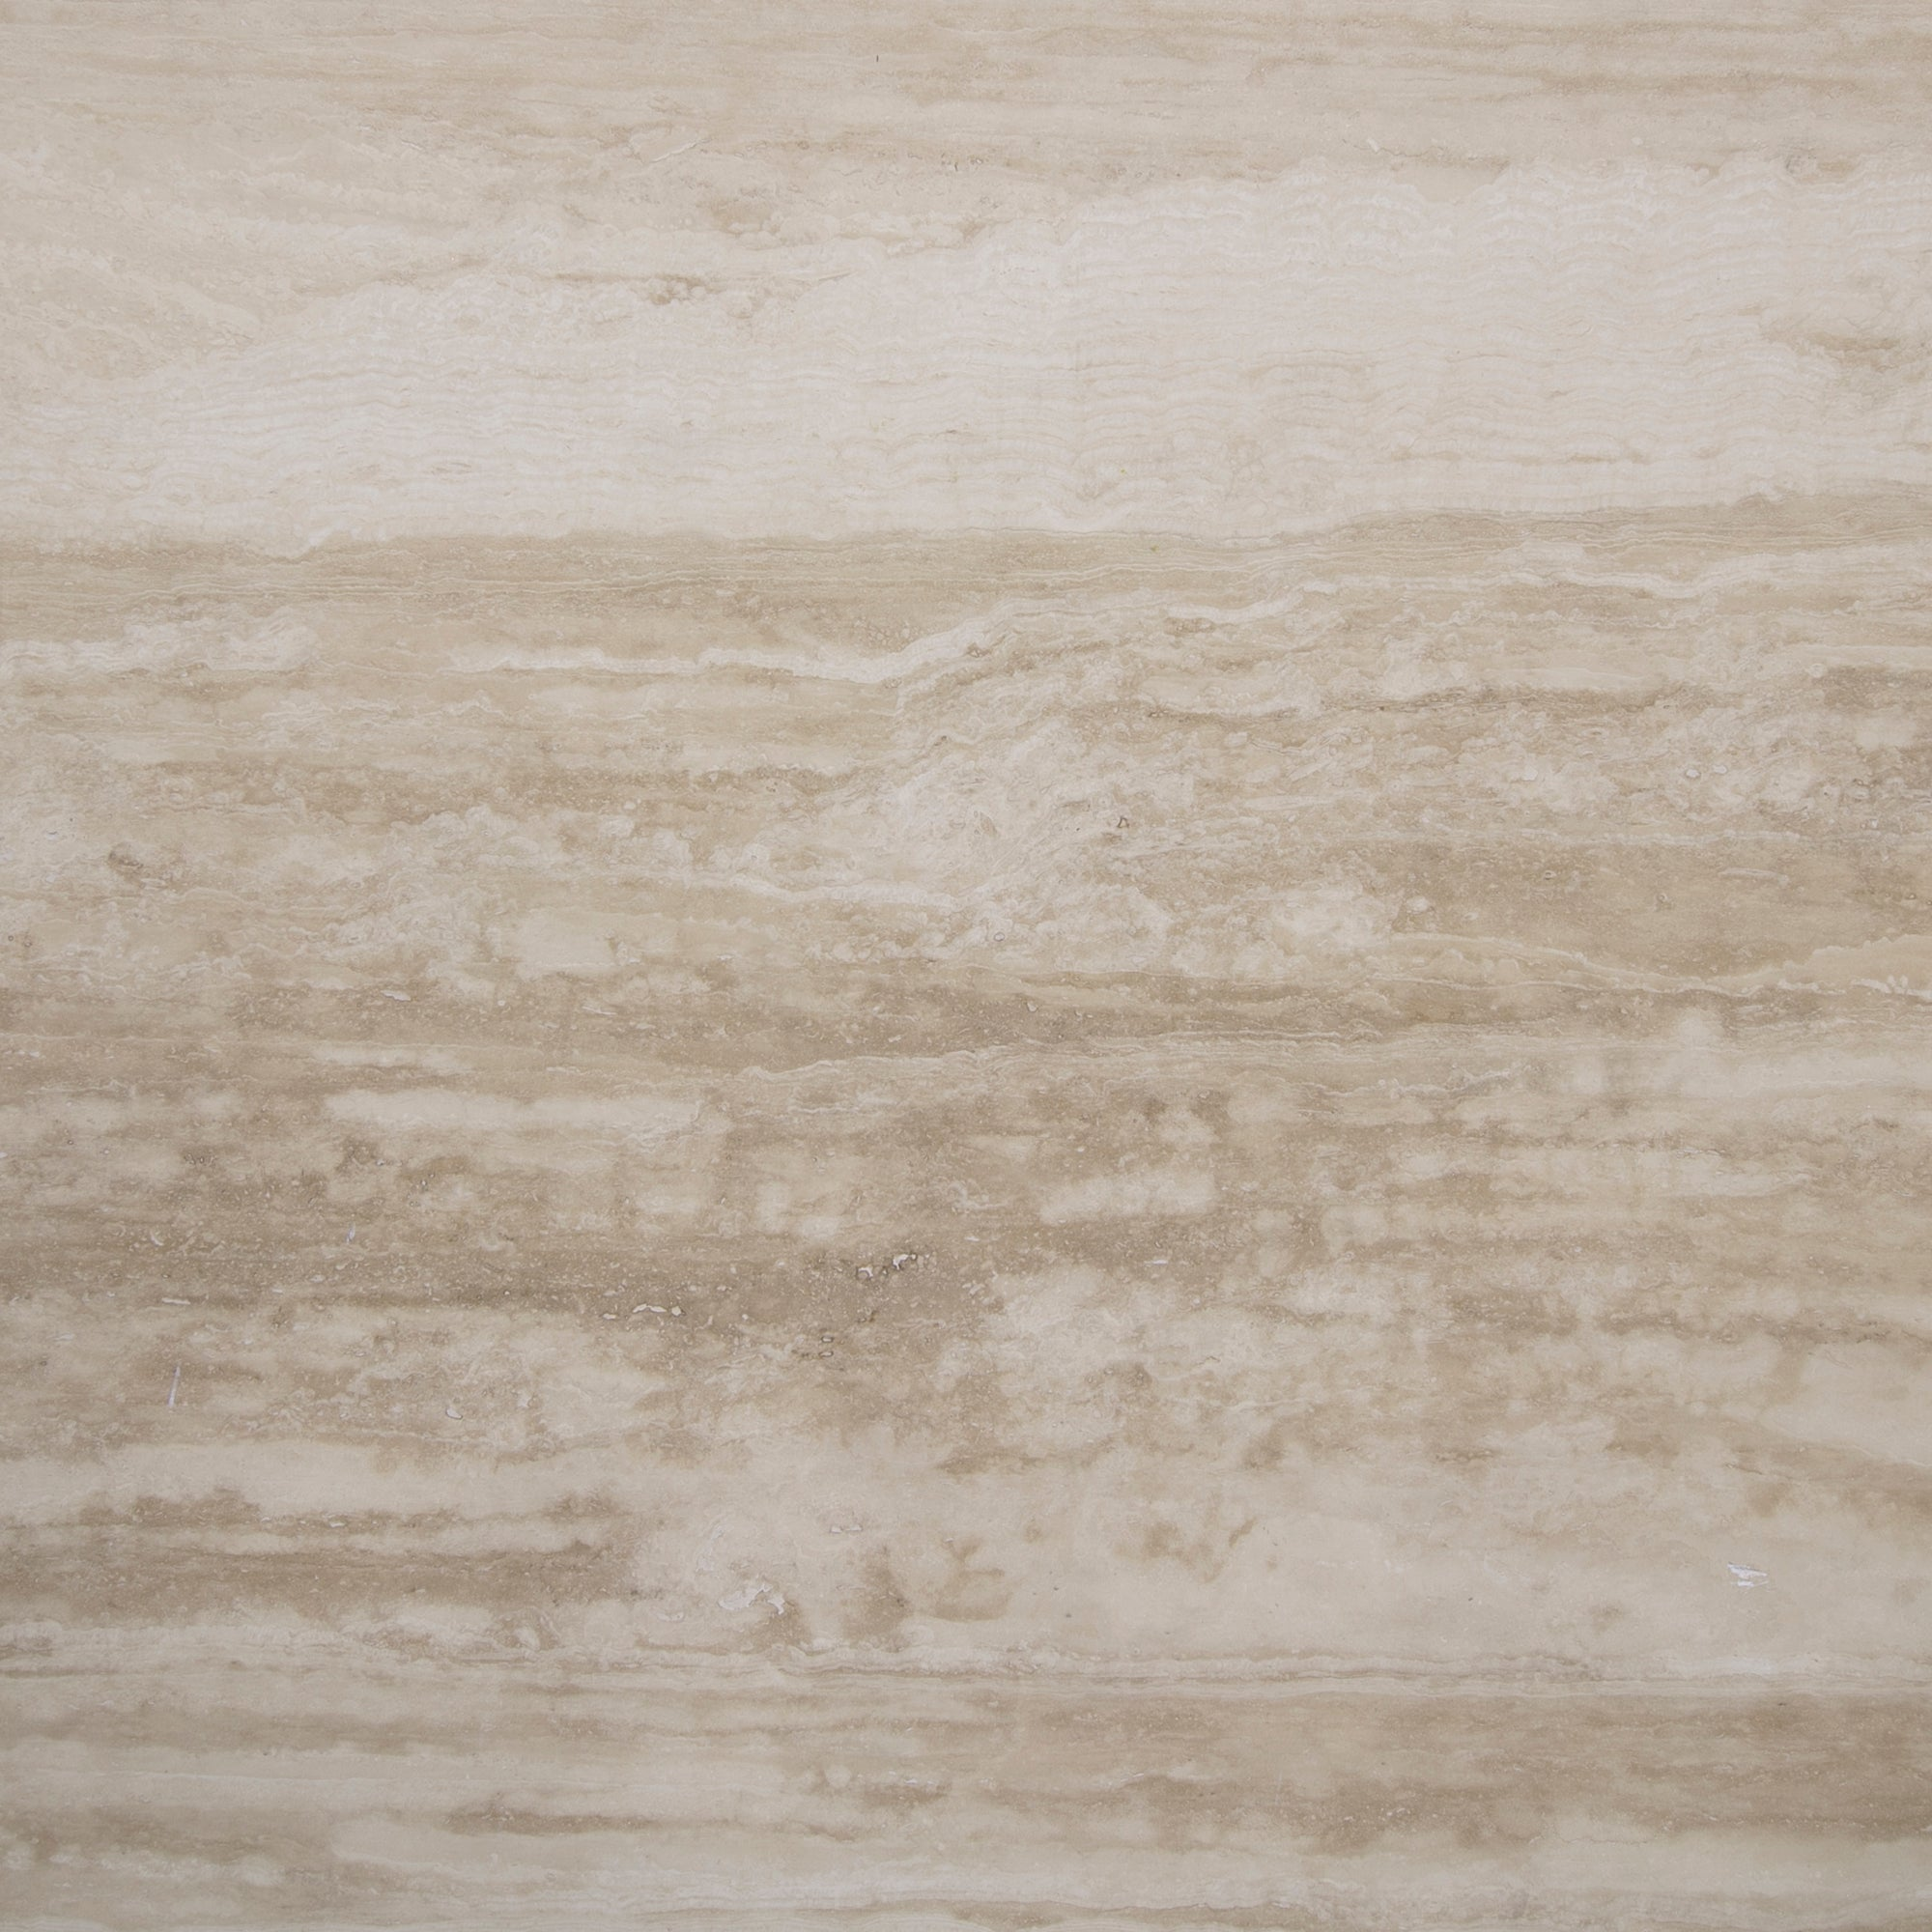 2cm White Travertine Swatch Card  Honed Samples Slab product photo